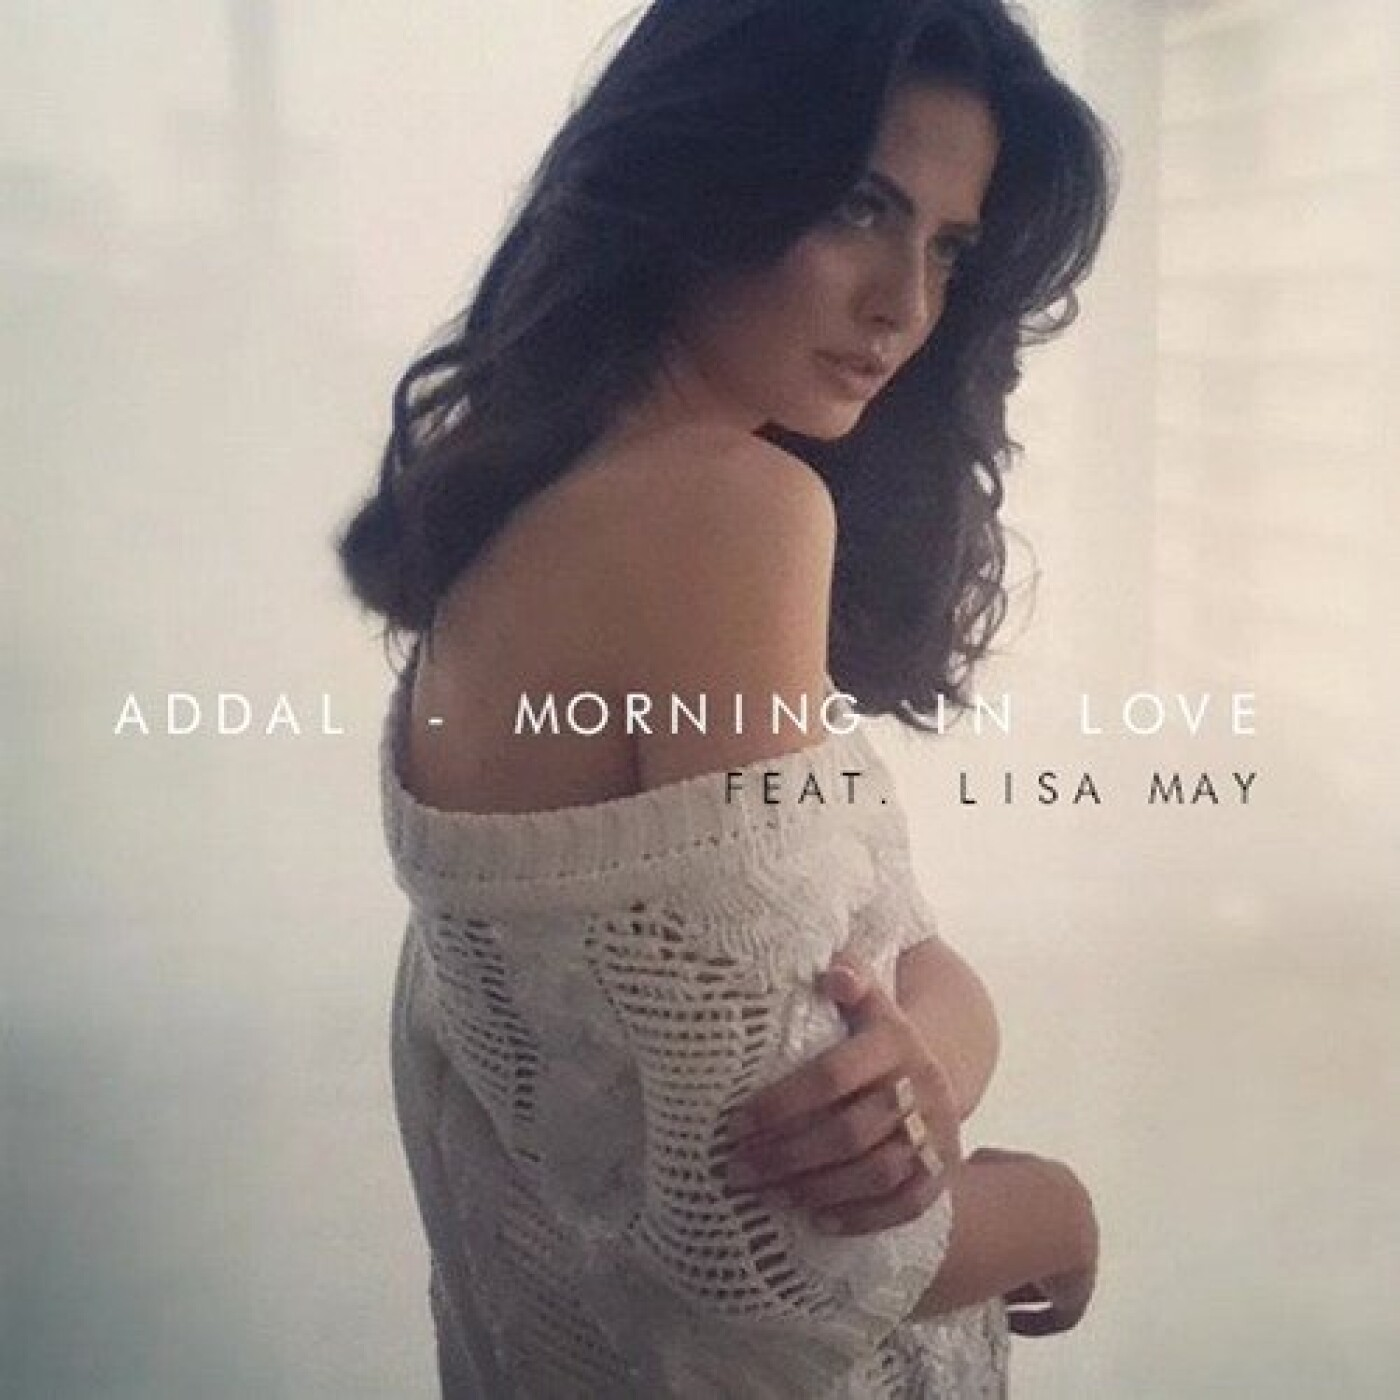 Nata'Lee nous présente son coup de cœur, Addal feat. Lisa May - Morning In Love - 24 09 2021 - StereoChic Radio